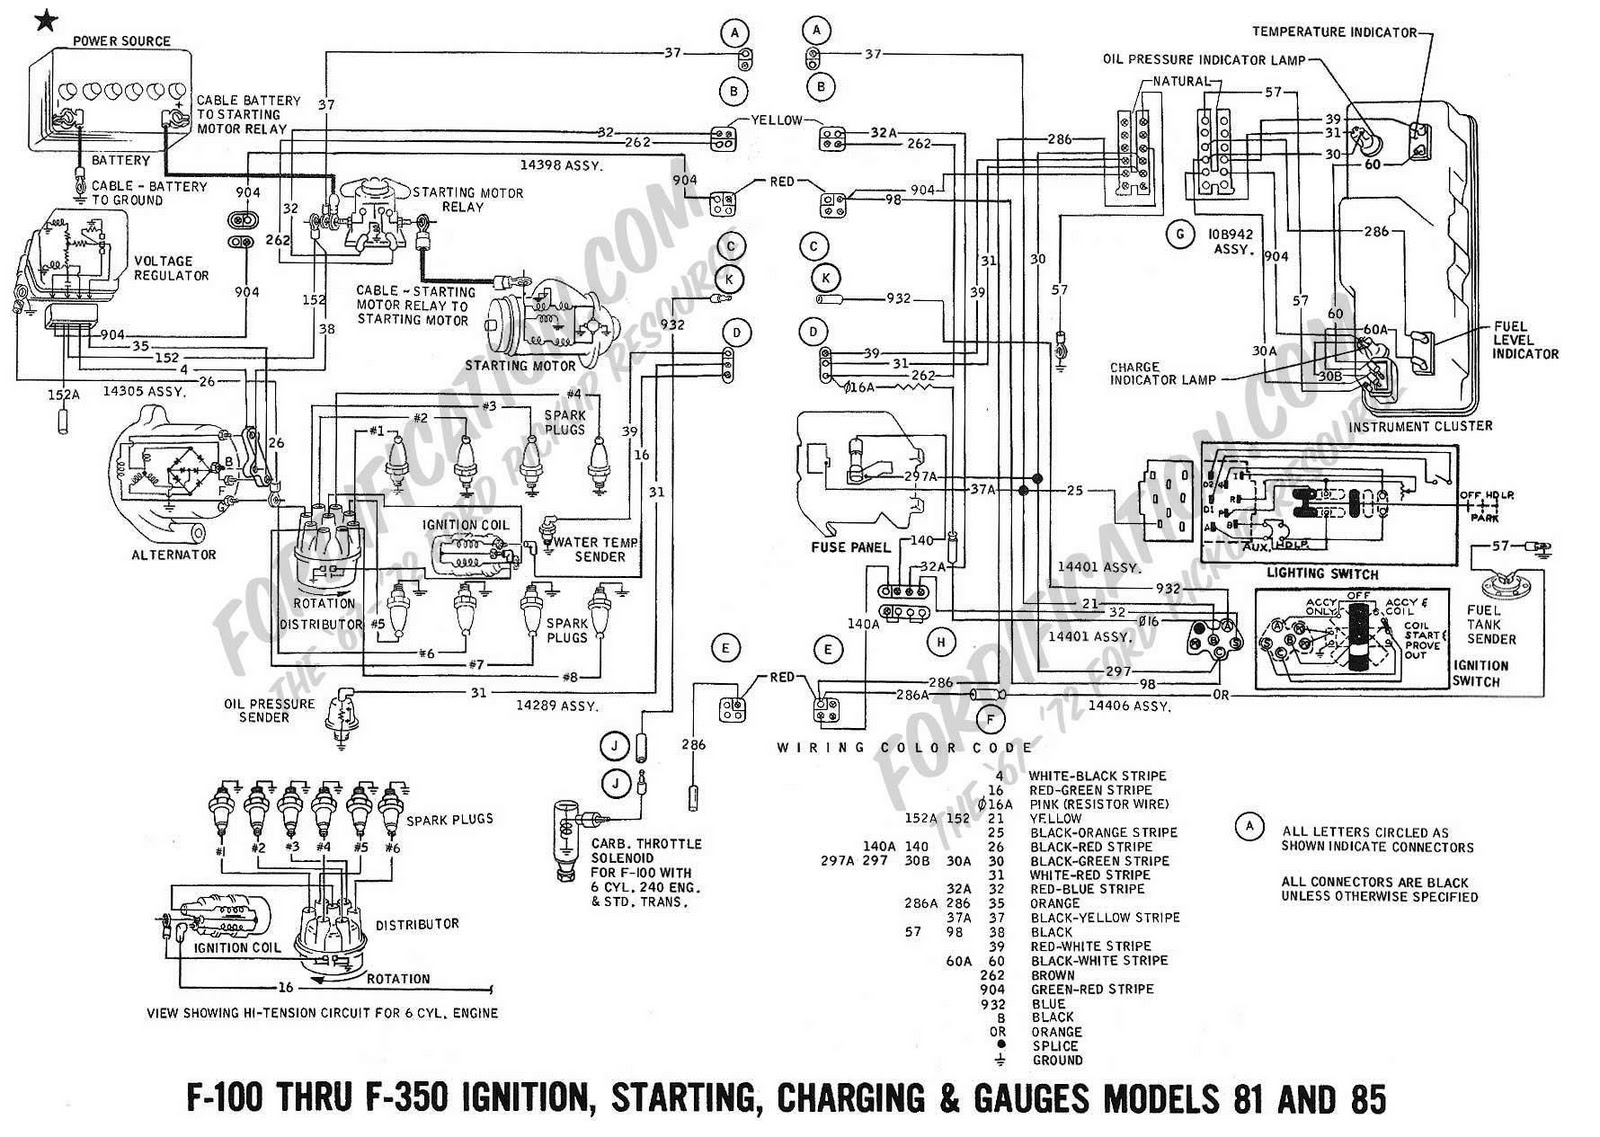 small resolution of 1963 ford ignition coil wiring wiring diagram explained rh 8 11 corruptionincoal org 63 corvette wiring diagram 1963 chevy impala wiring diagram